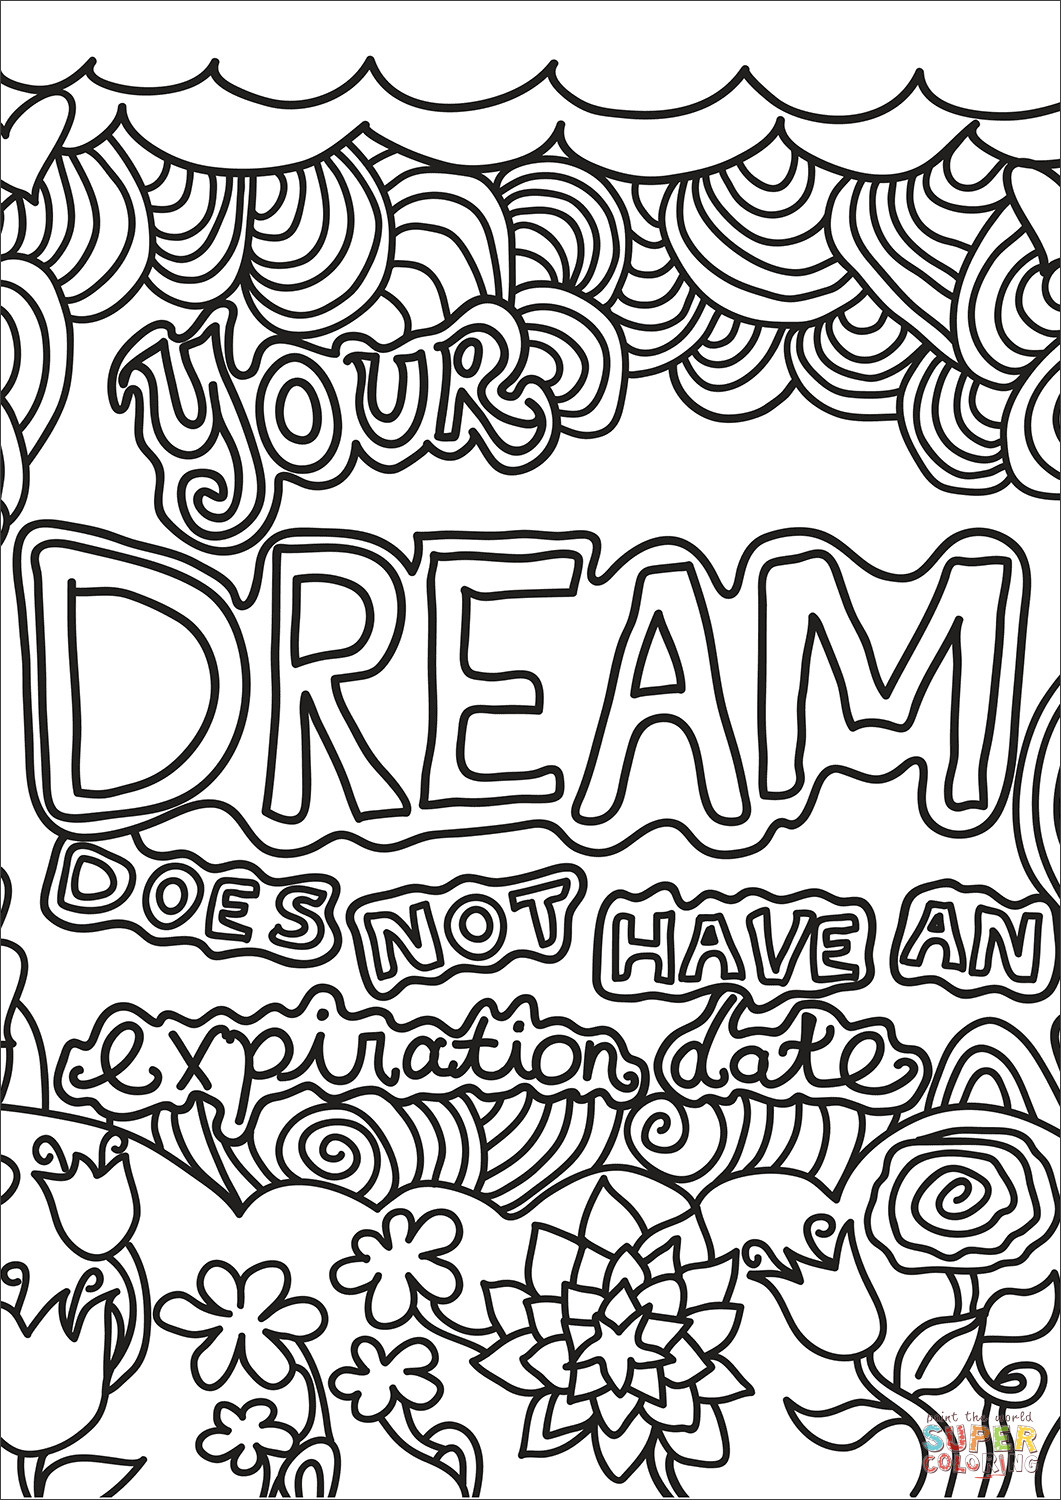 Coloring Sheets For Girls With The Words Dream  Your Dream Does Not Have an Expiration Date coloring page